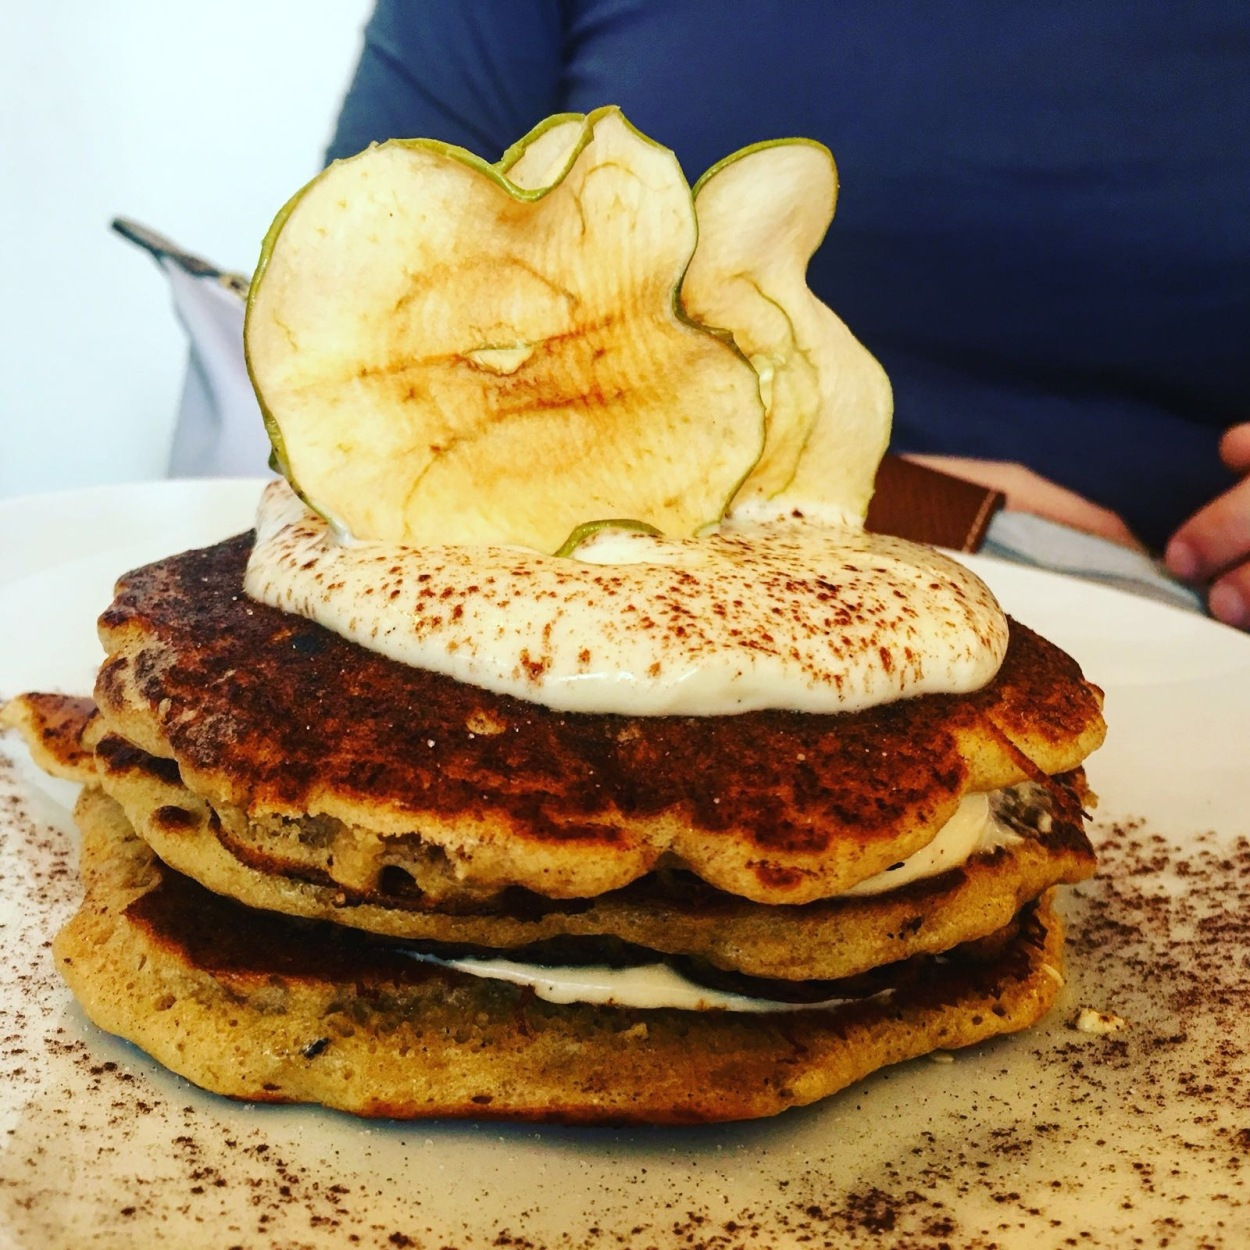 Carrot cake pancakes - Why not?